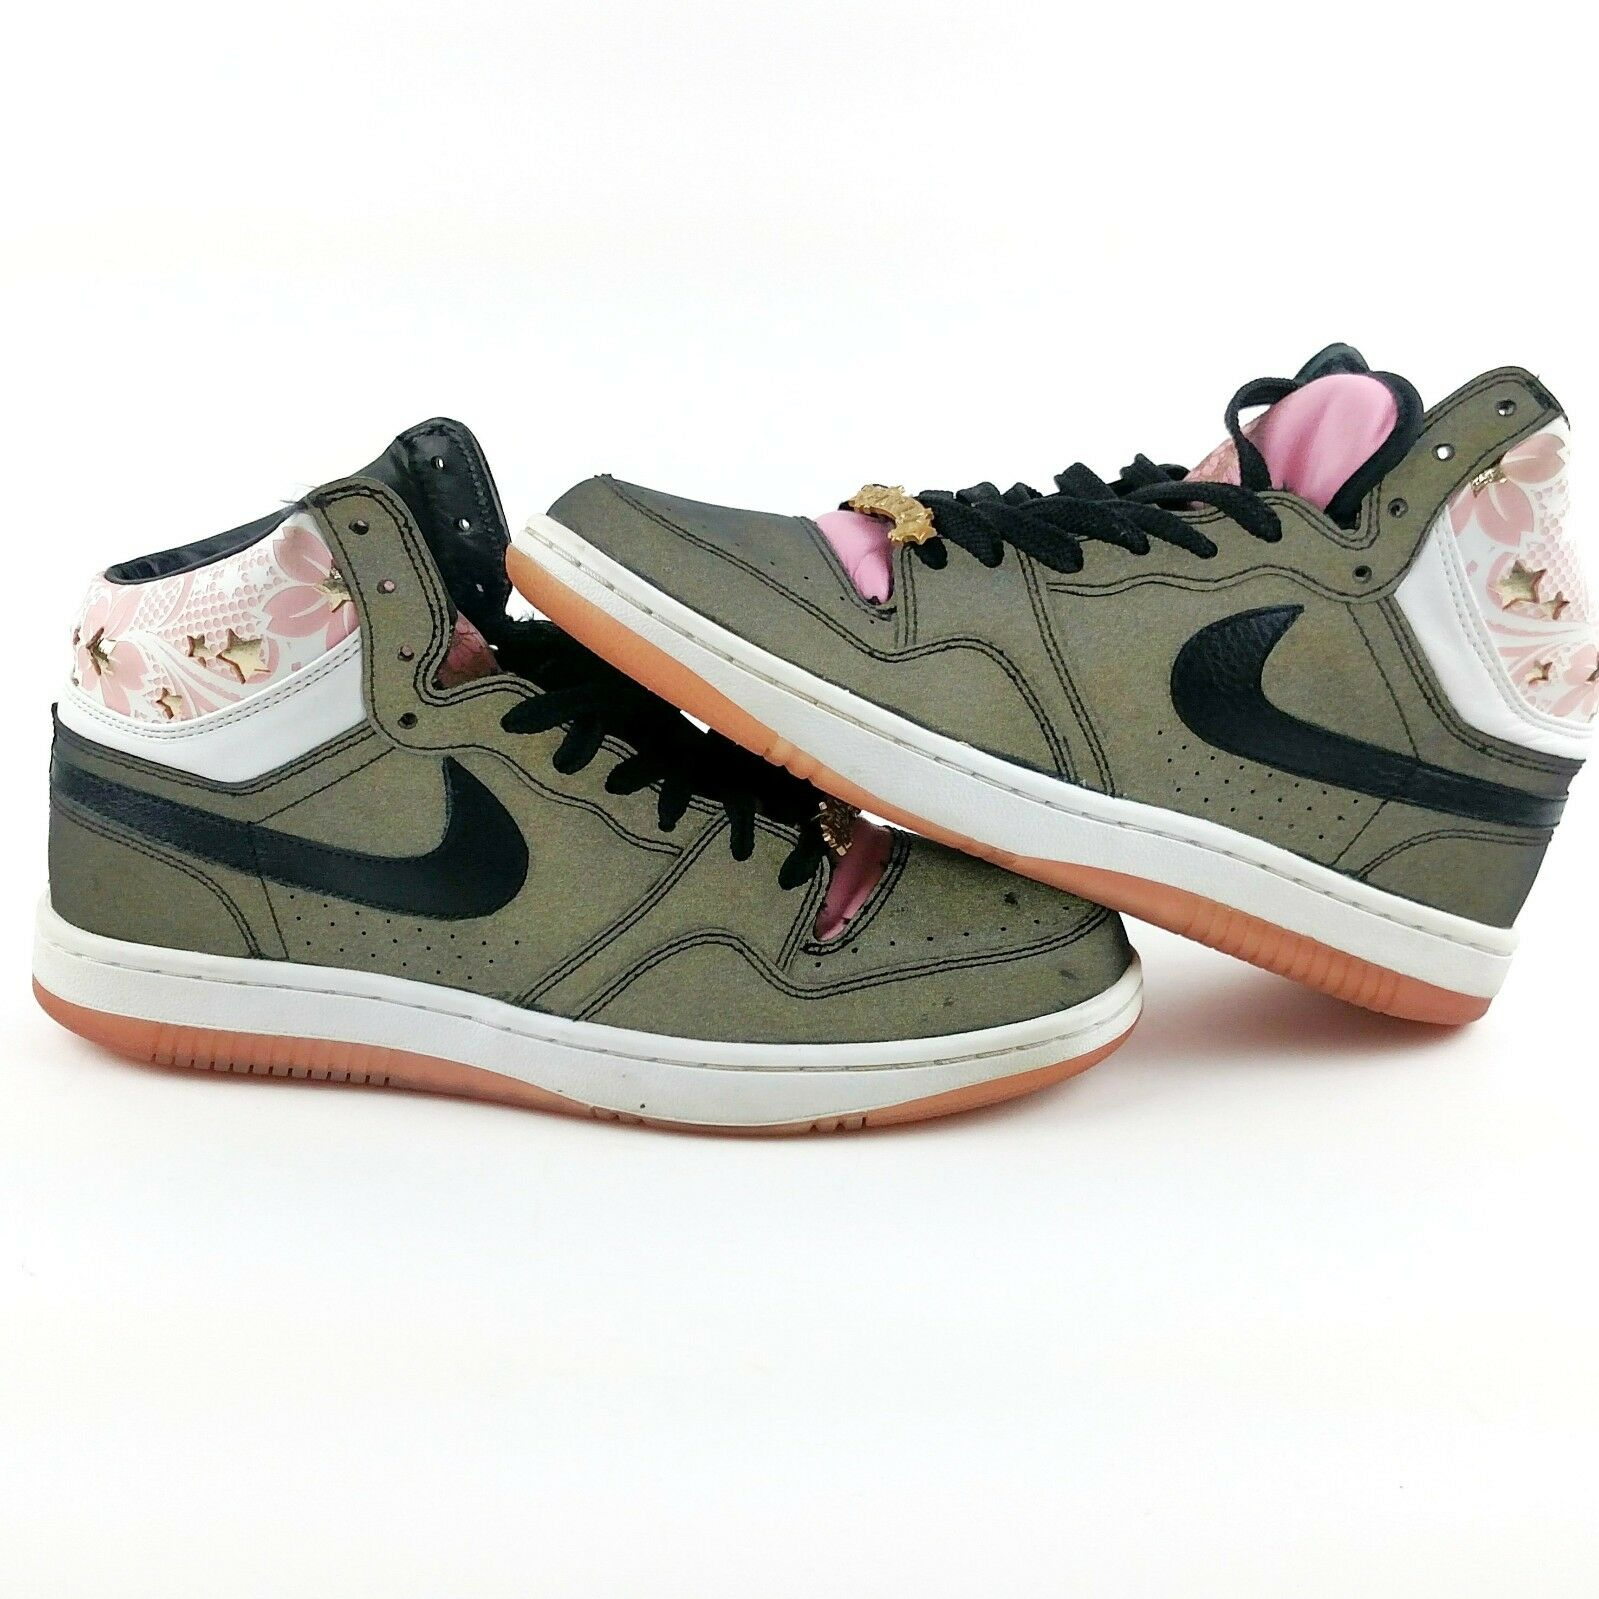 Nike Court Force Hi Premium 316384-002 Sakura Black Ueno 3M AF1 US Men's Size 11